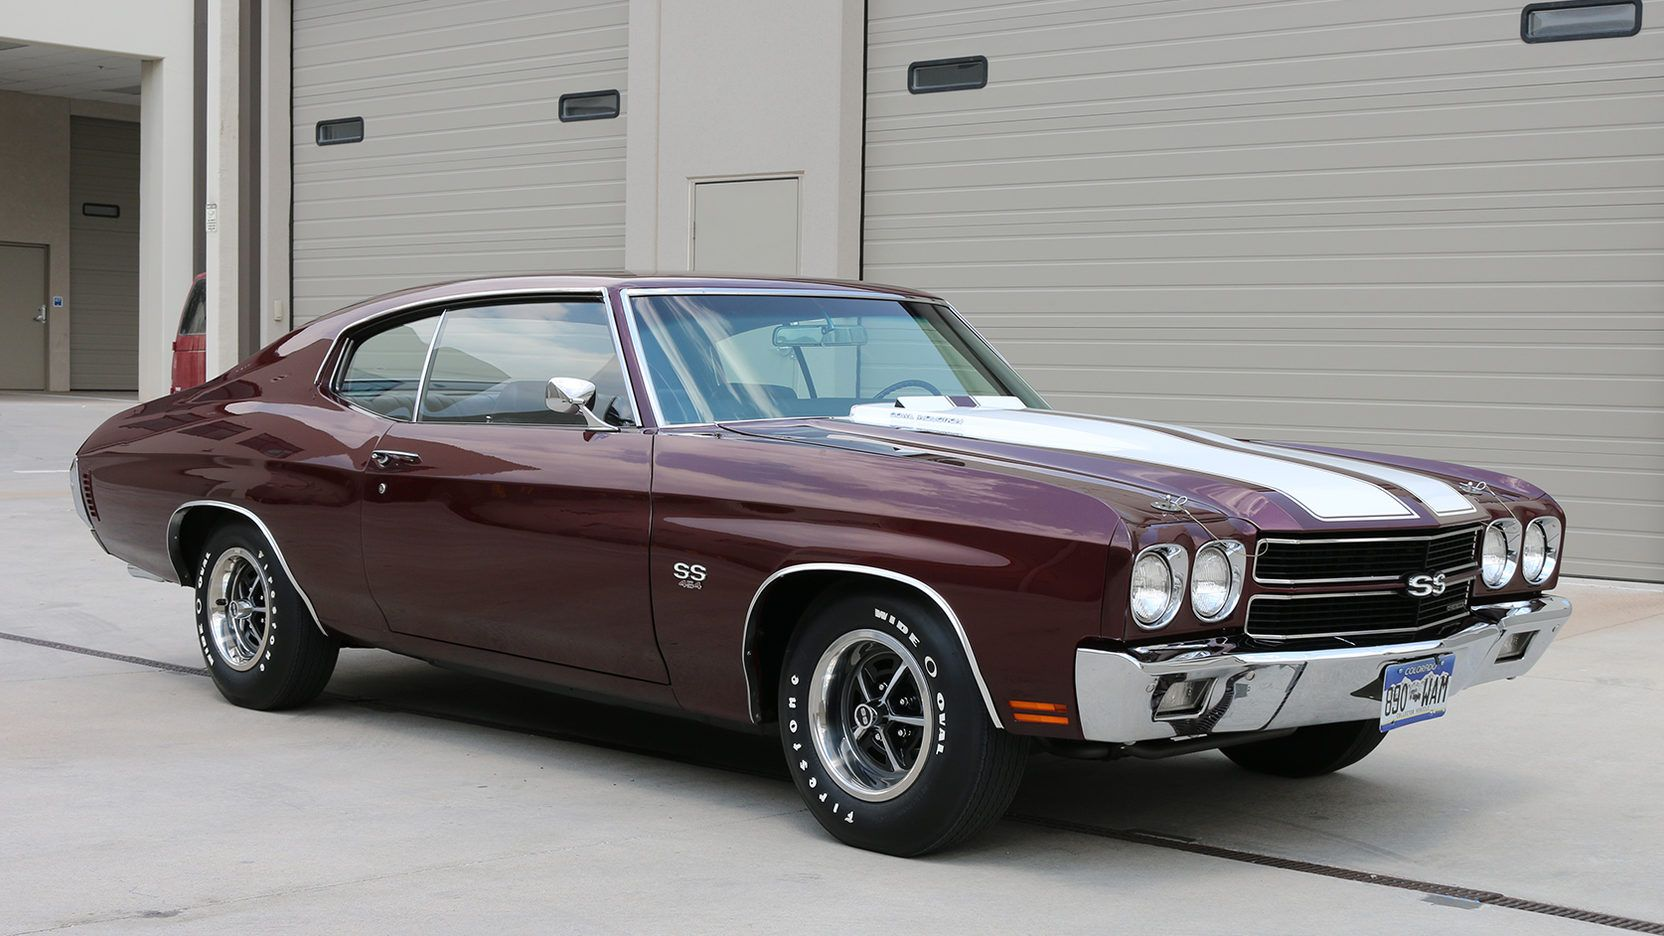 Auction Lot F126 Denver Co 2017 Matching Numbers 454 360 Hp Ls5 Engine M21 4 Speed Transmission Listed In Th Chevelle Chevrolet Chevelle Chevy Muscle Cars